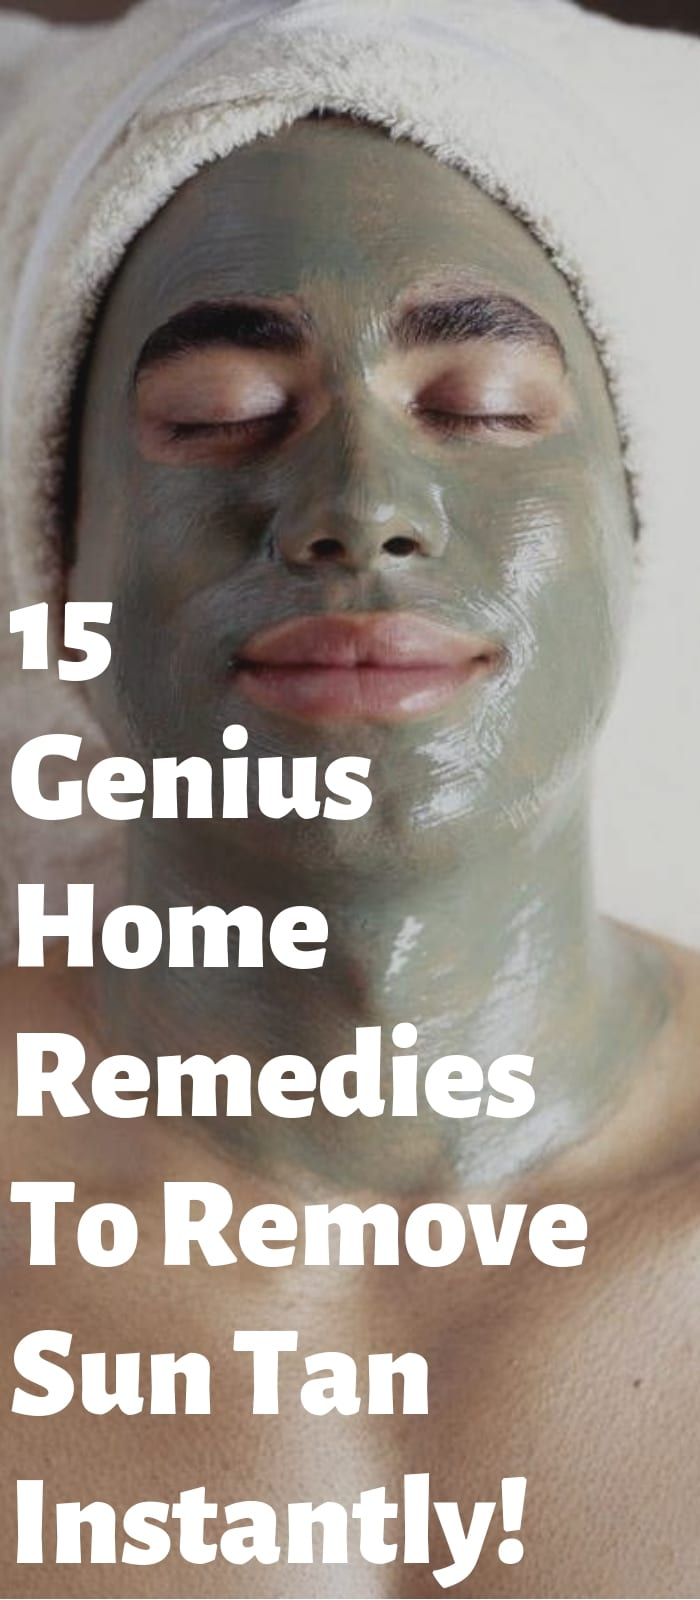 15 Genius Home Remedies To Remove Sun Tan Instantly!